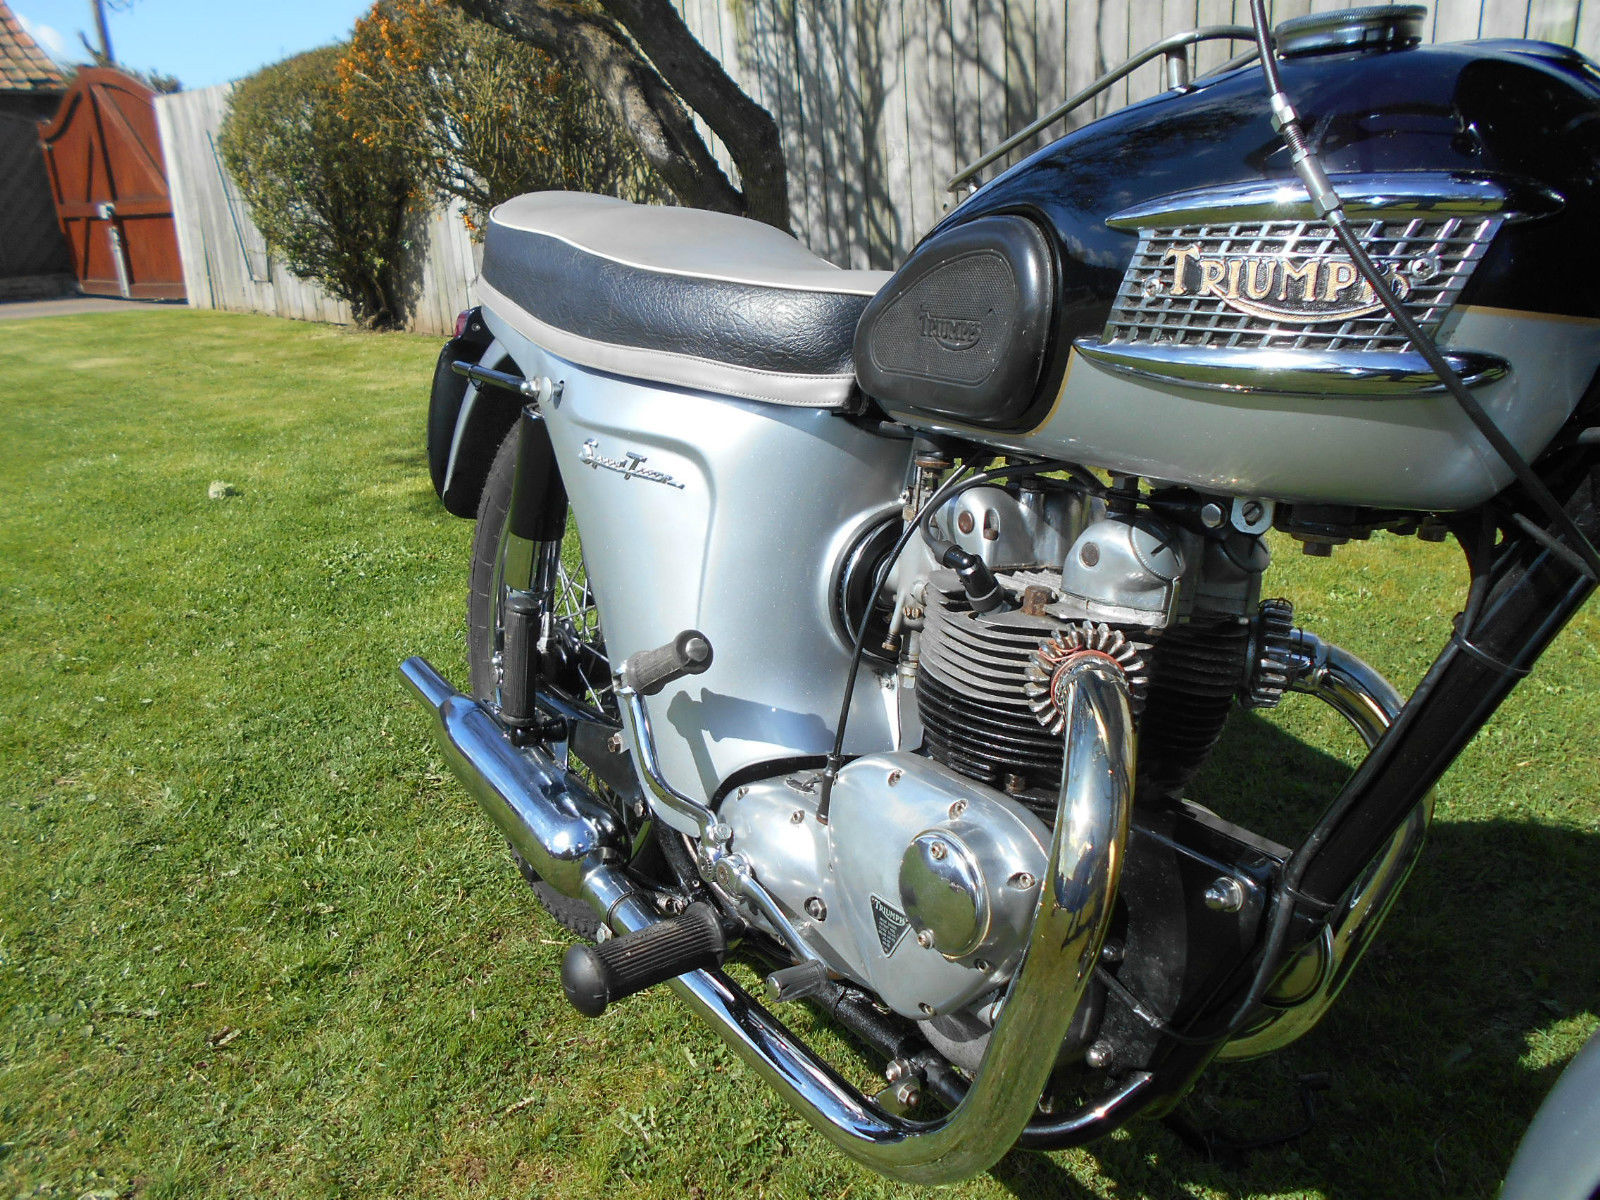 Triumph Speed Twin - 1964 - Motor and Transmission, Exhausts, Triumph Tank Badge and Tank Protector.